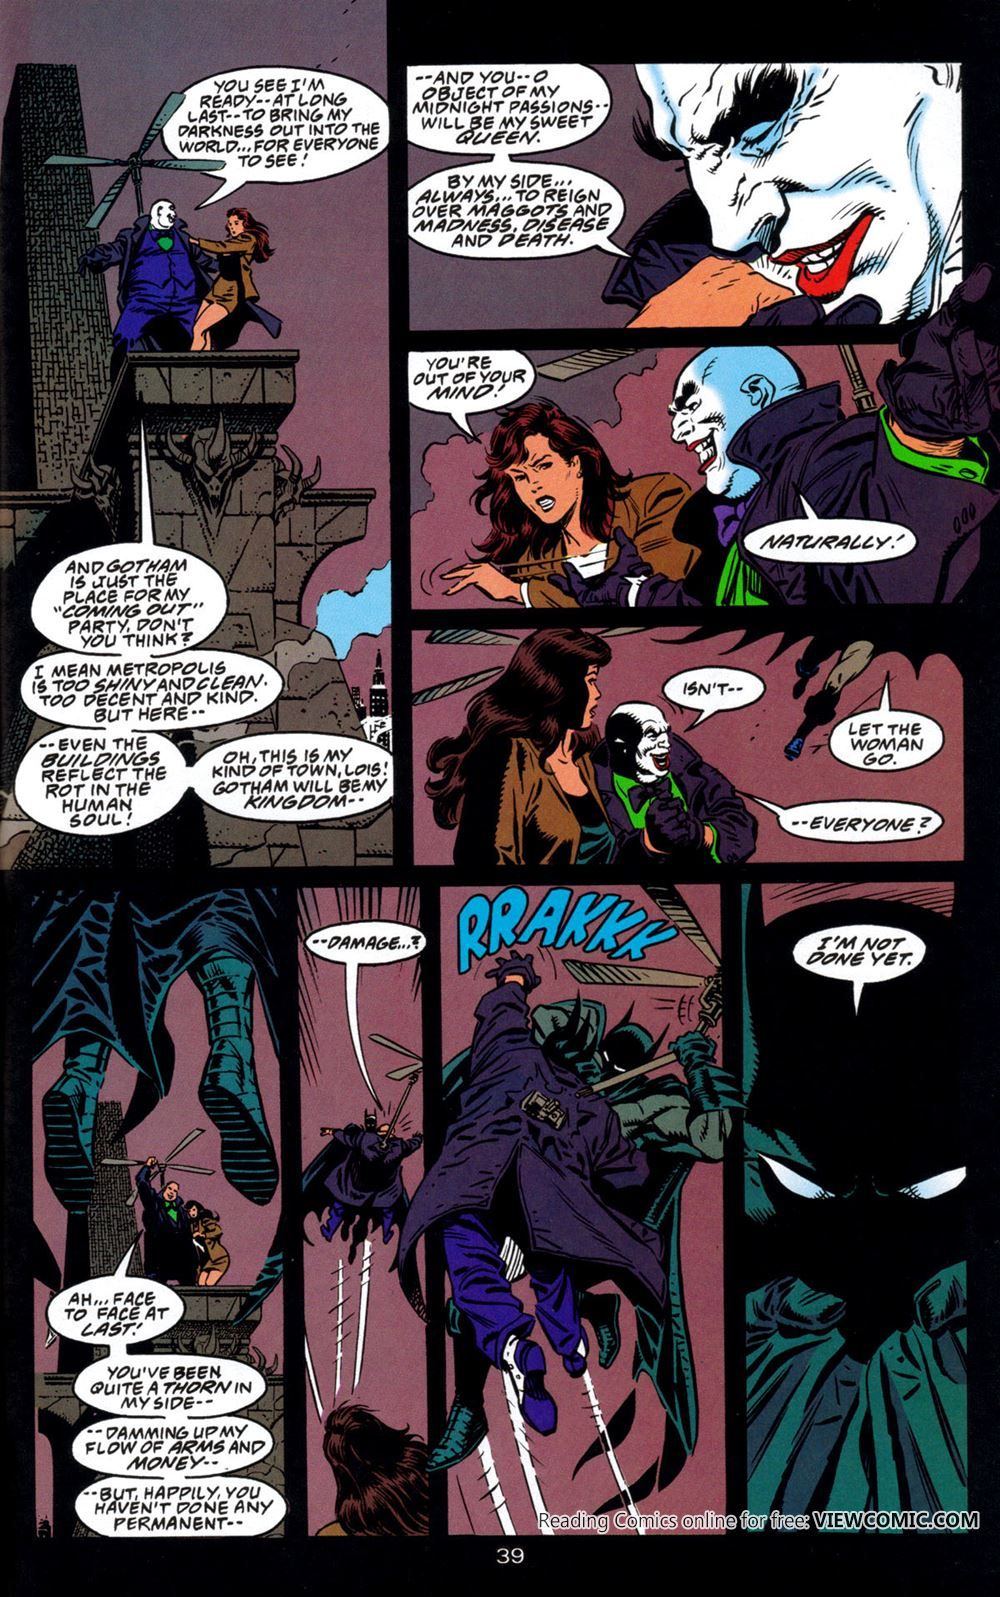 Pin by Ghost the Fox cat hybrid on Comics (With images